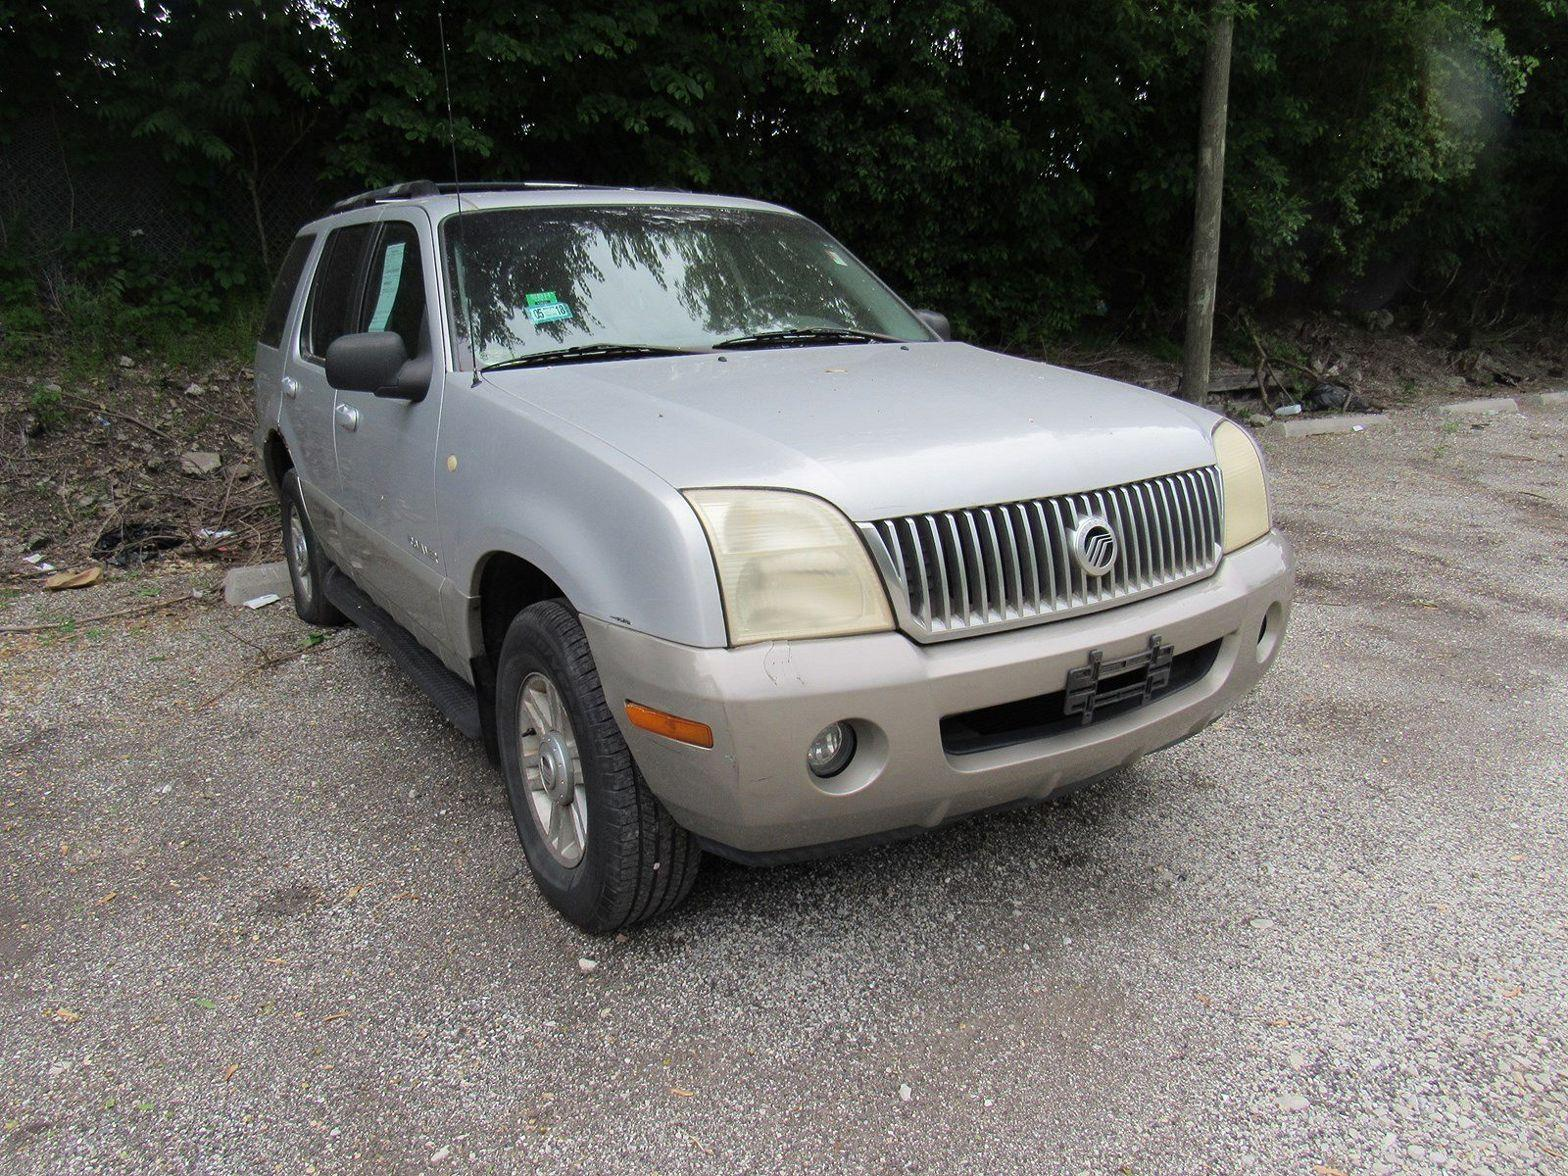 2002 Mercury Mountaineer $900